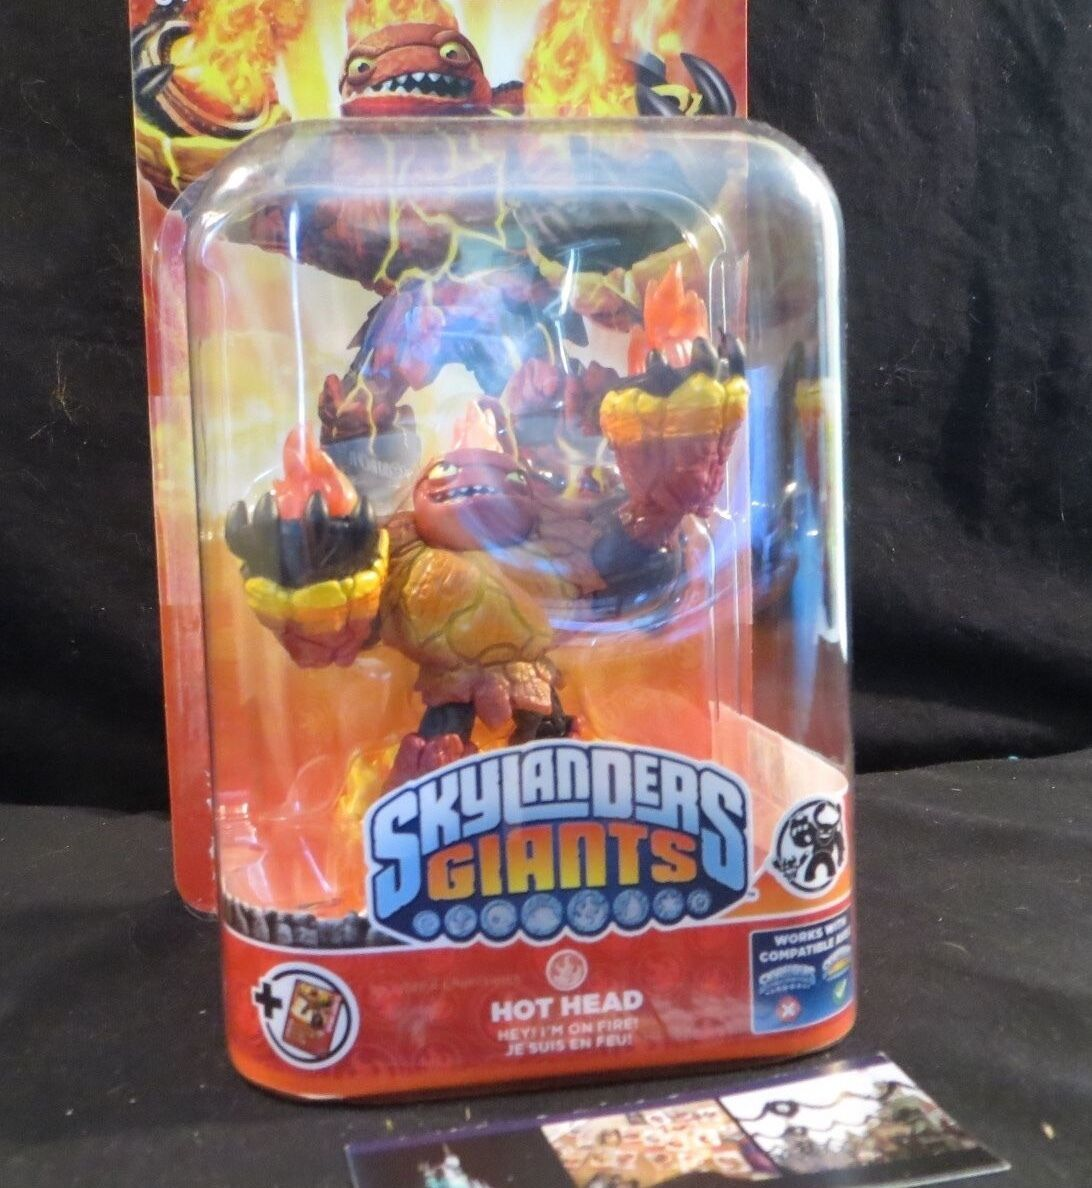 Primary image for Skylanders Giants Hot Head action figure video game accessories single pack